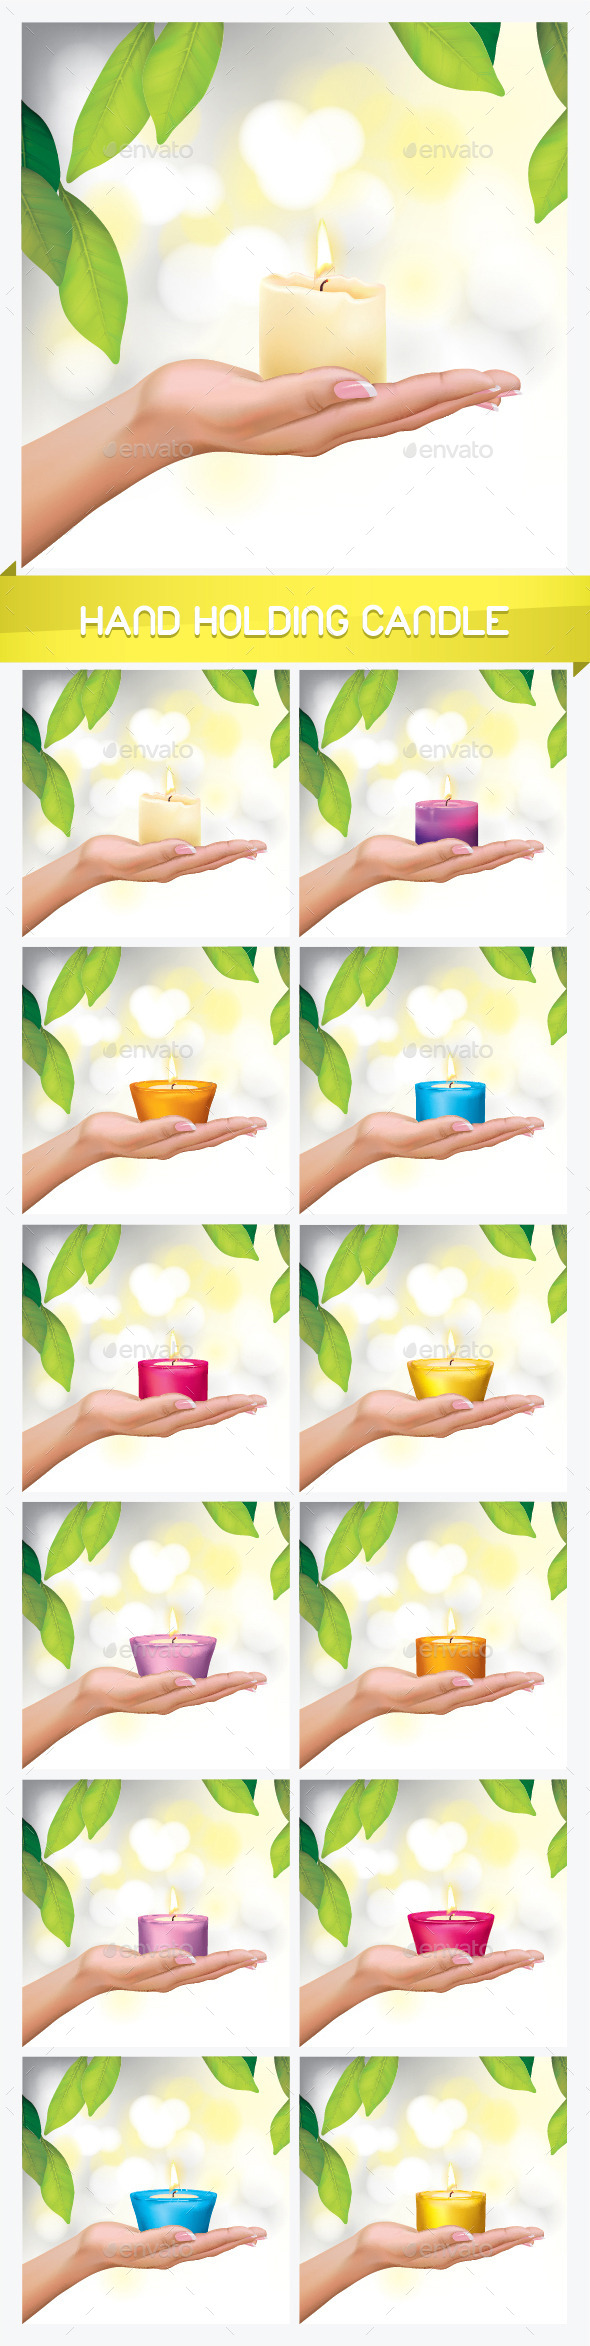 Woman Hand Holding Candle - Miscellaneous Vectors